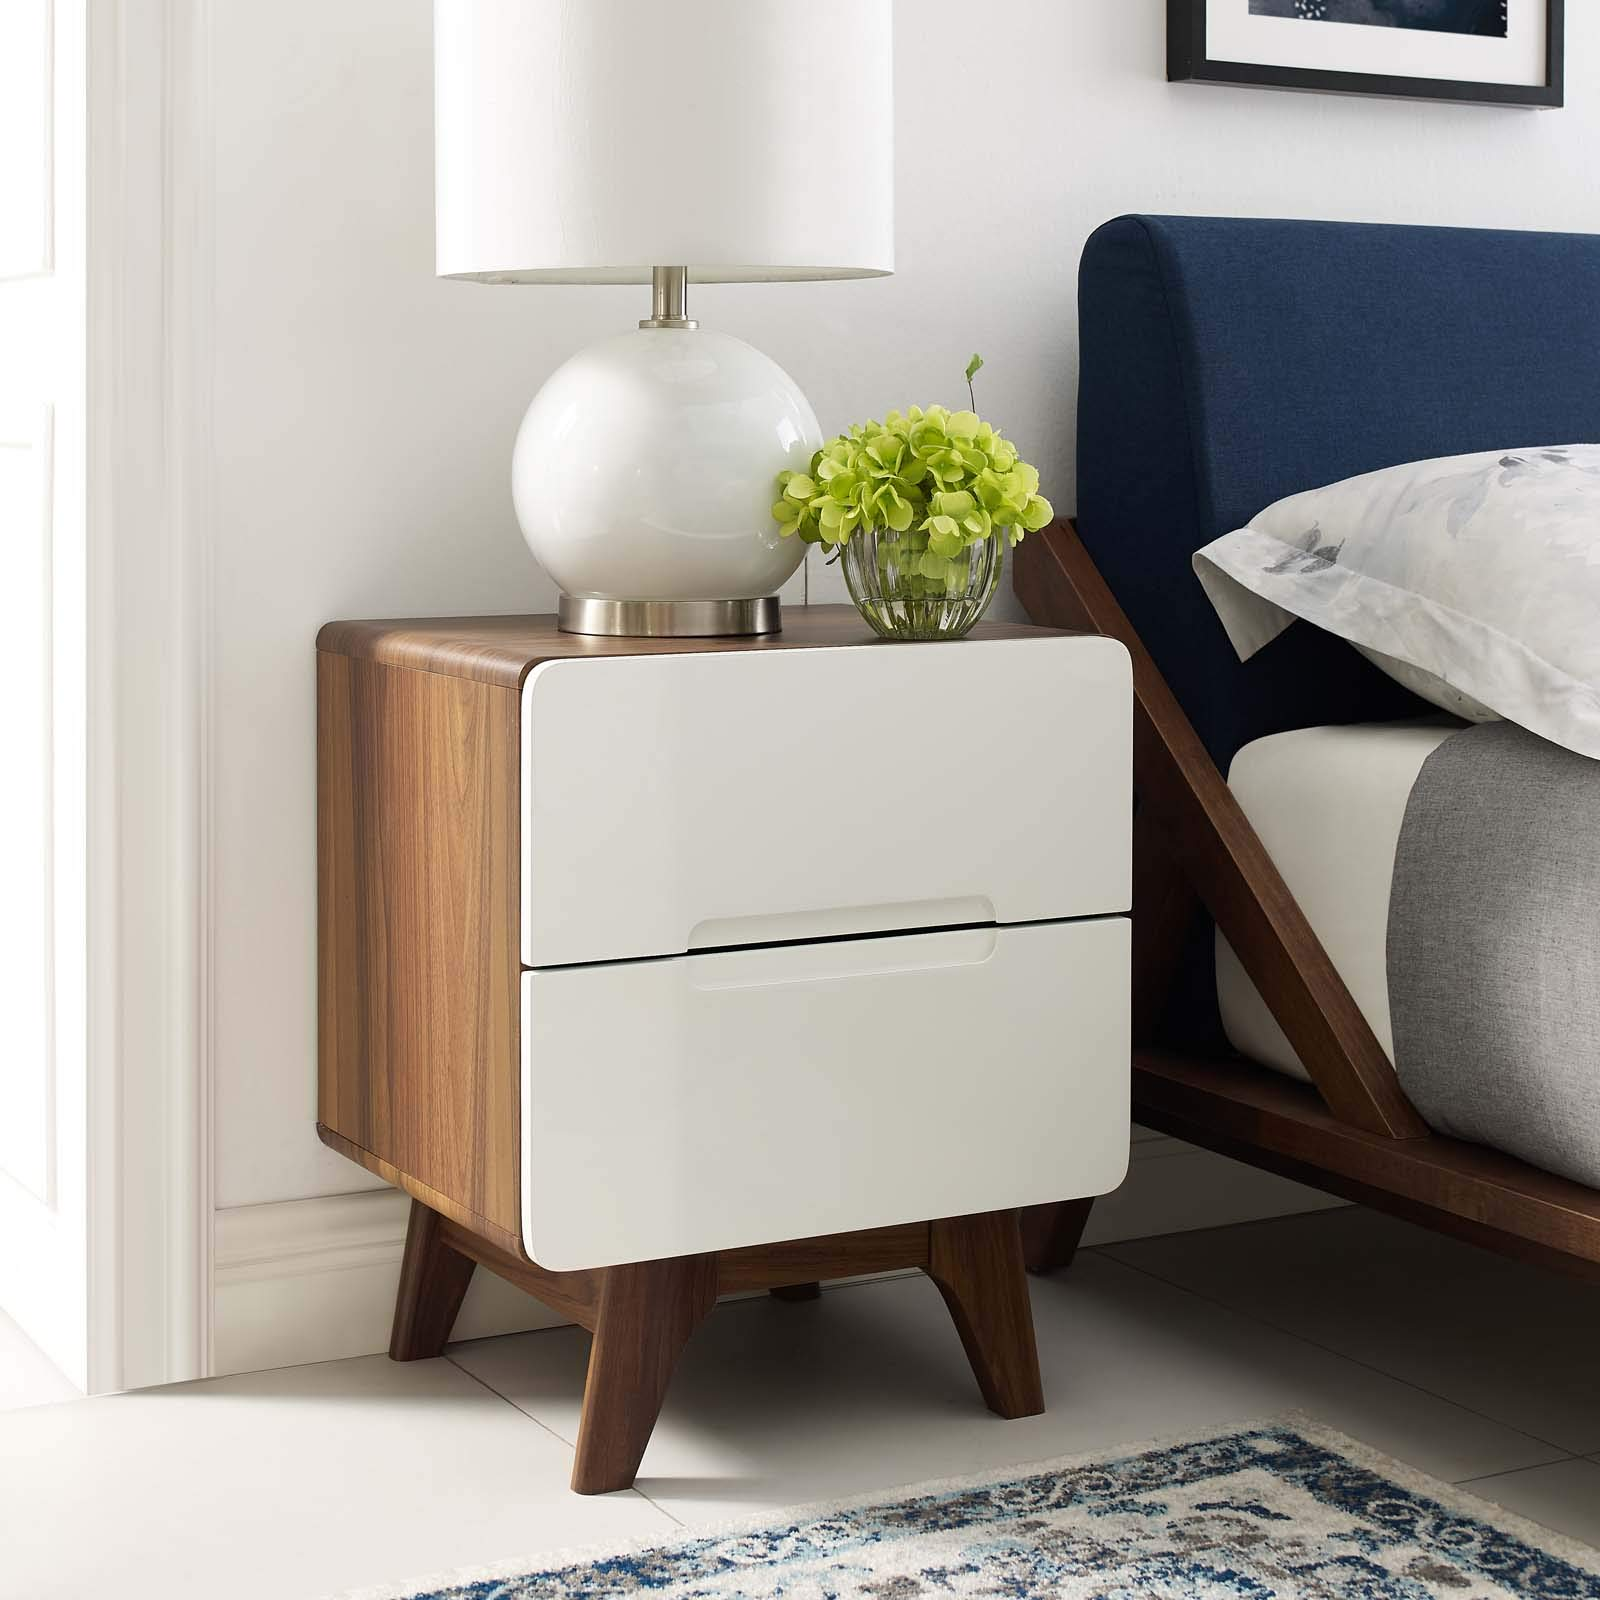 Modway Origin Contemporary Mid-Century Modern 2-Drawer Bedroom Nightstand in Walnut White by Modway